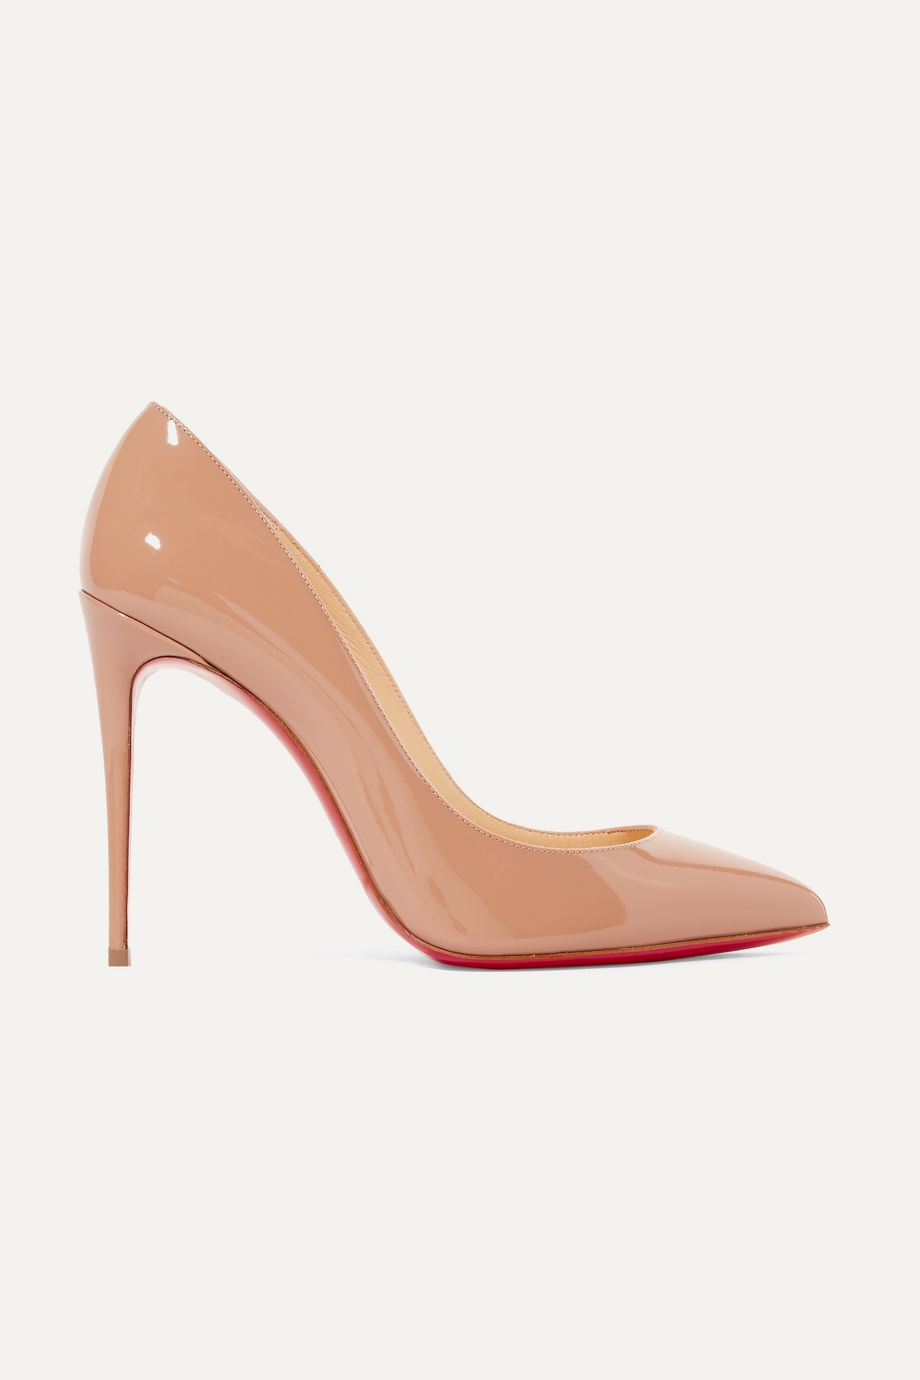 Pigalle Follies 100 suede pumps